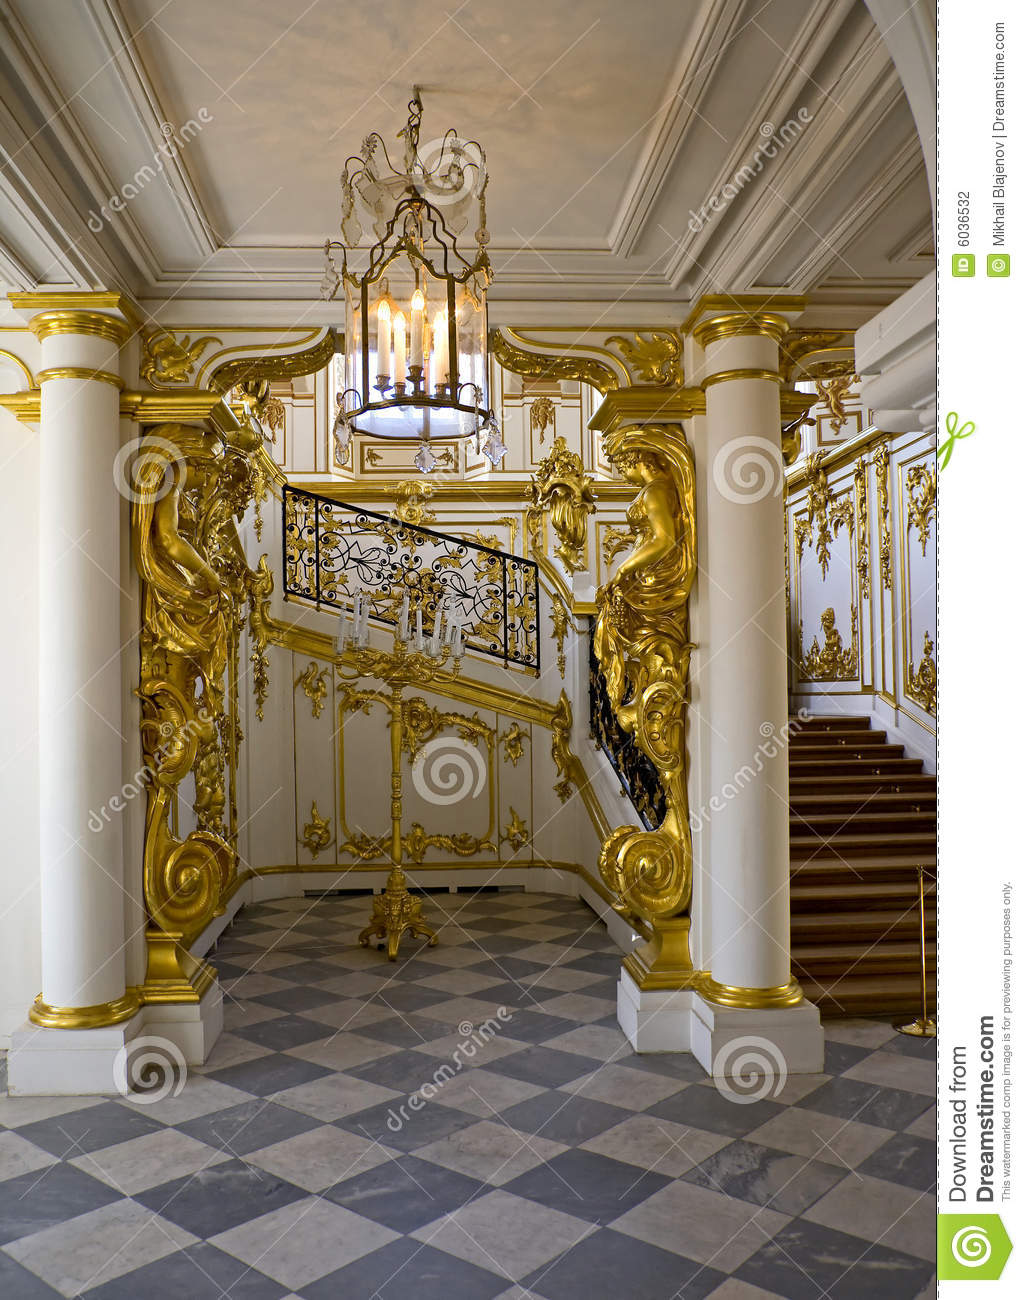 Palace interior 1 stock photo image of russia entrance 6036532 - Interior images ...